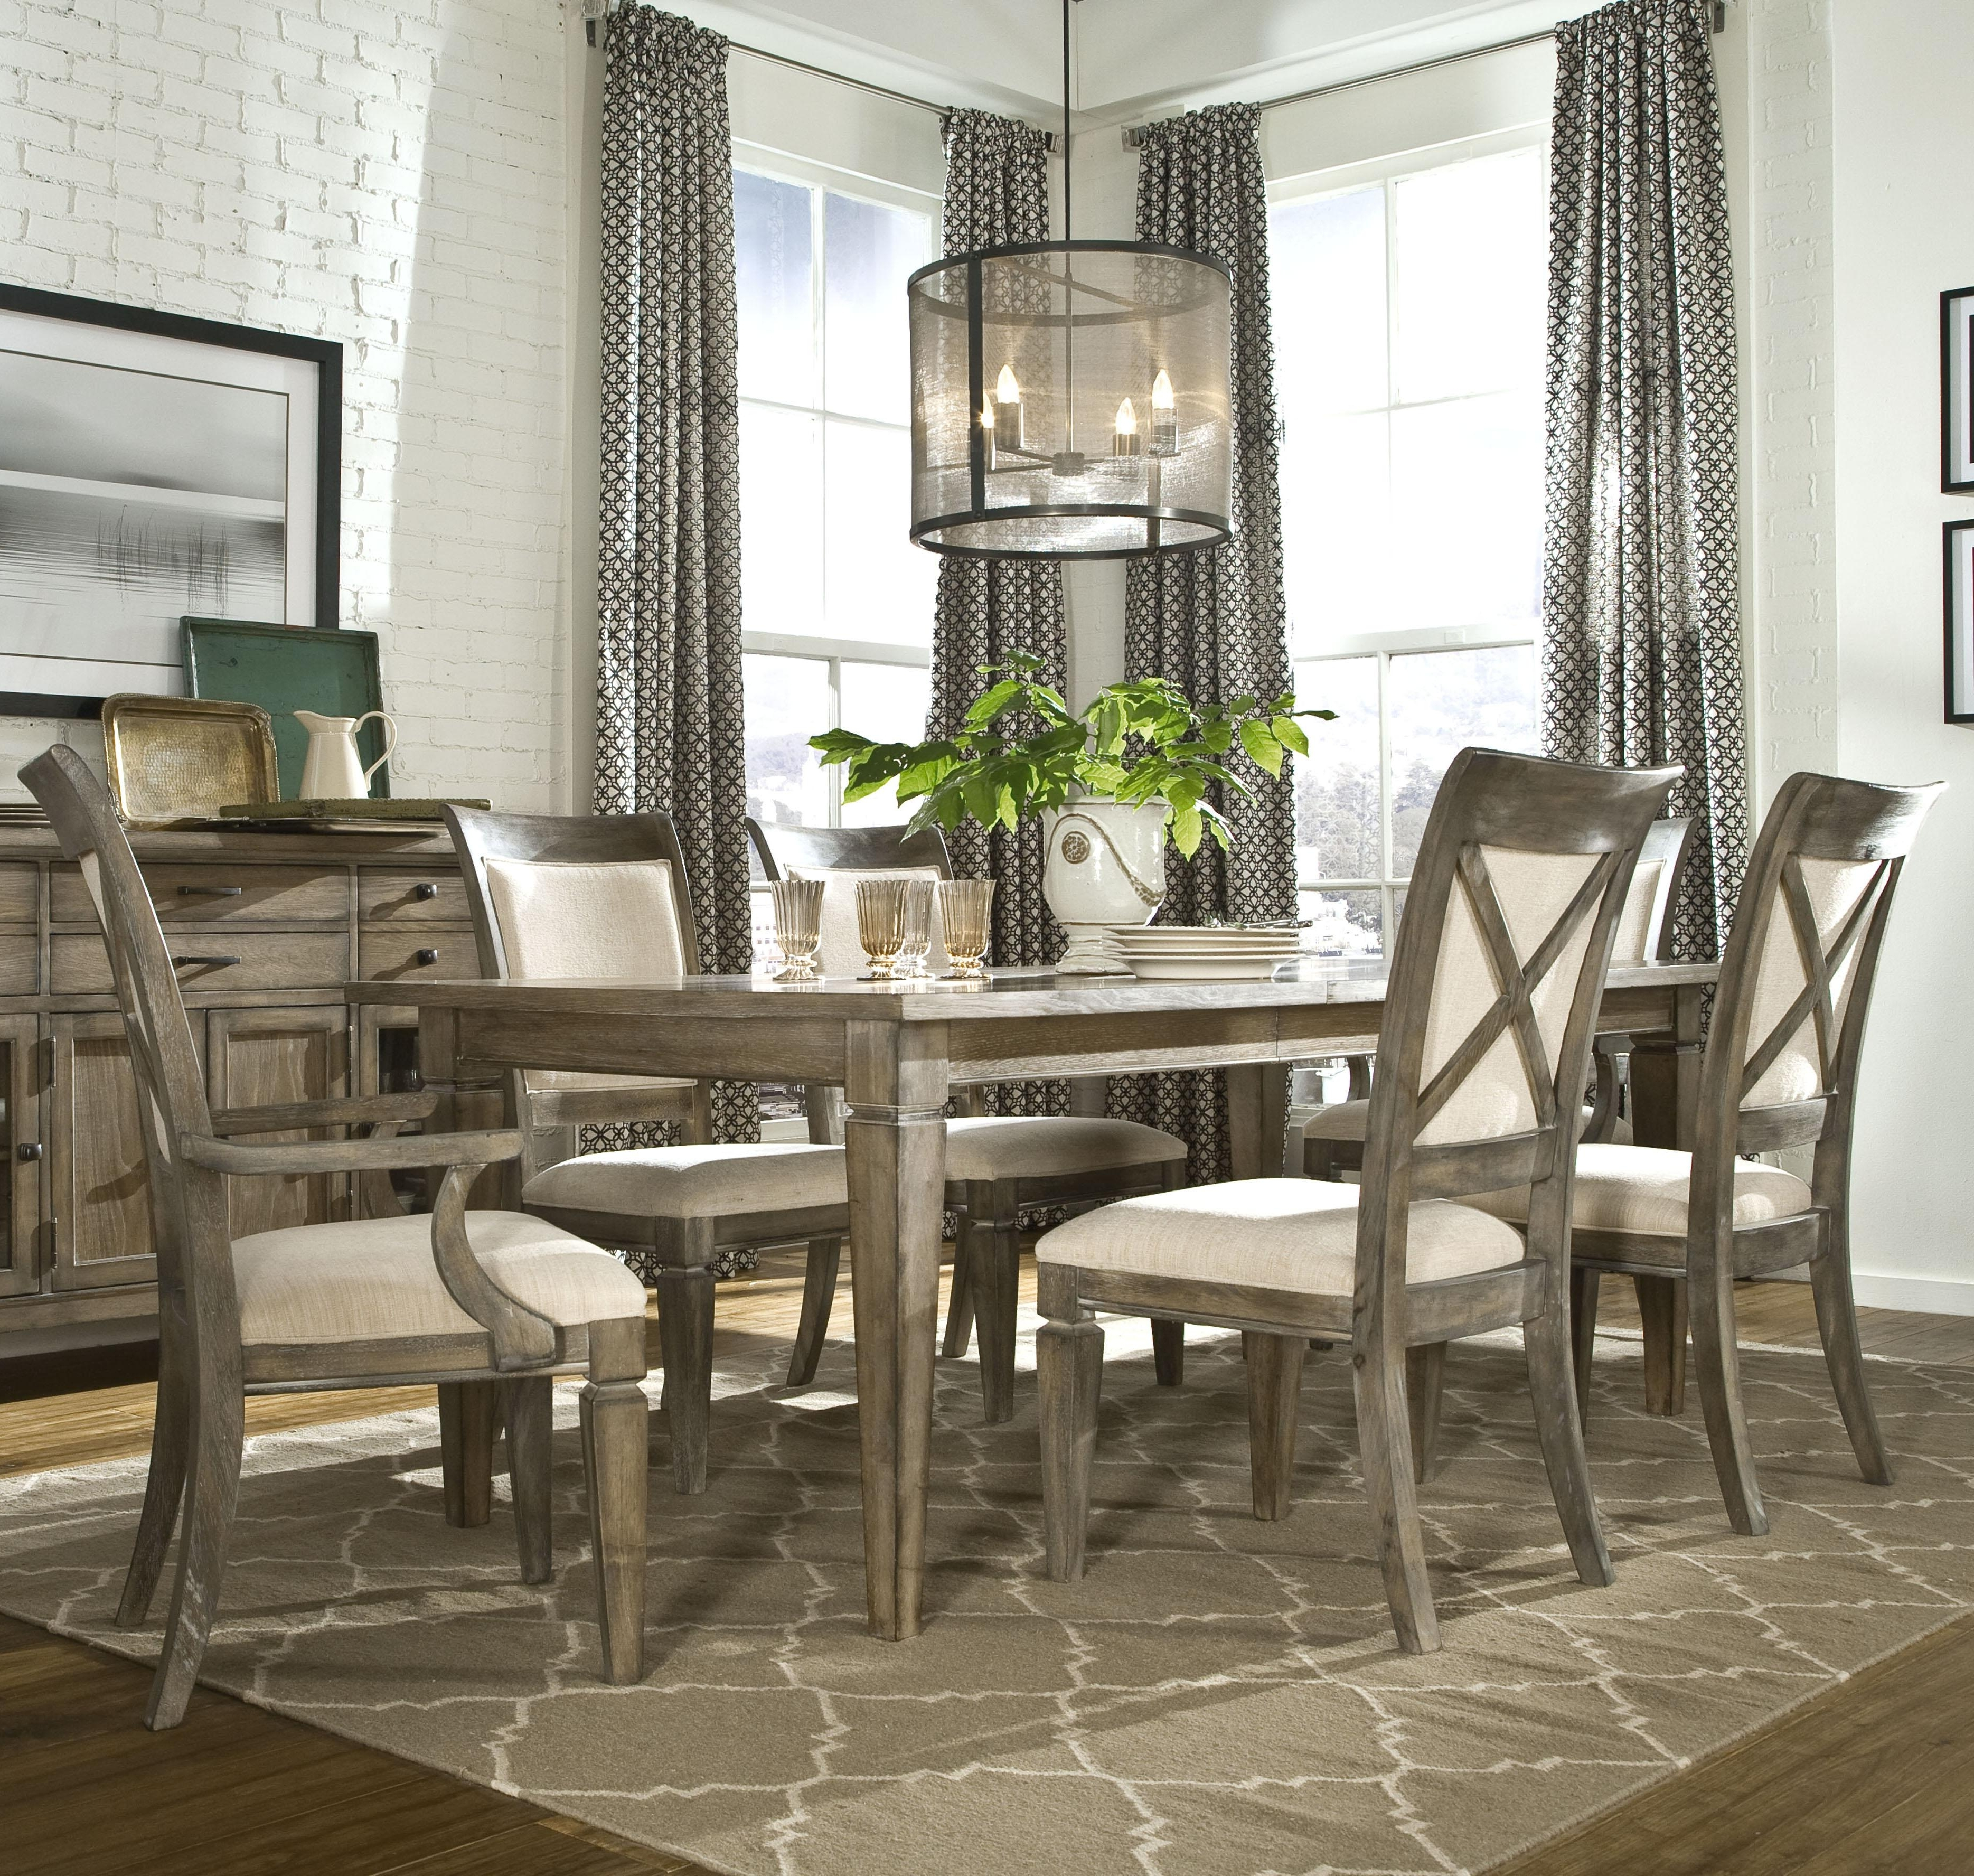 Latest Jaxon Grey 7 Piece Rectangle Extension Dining Sets With Wood Chairs For Kitchen Dinette Sets 7 Piece Dining Set Cheap 7 Piece Counter Height (View 11 of 25)